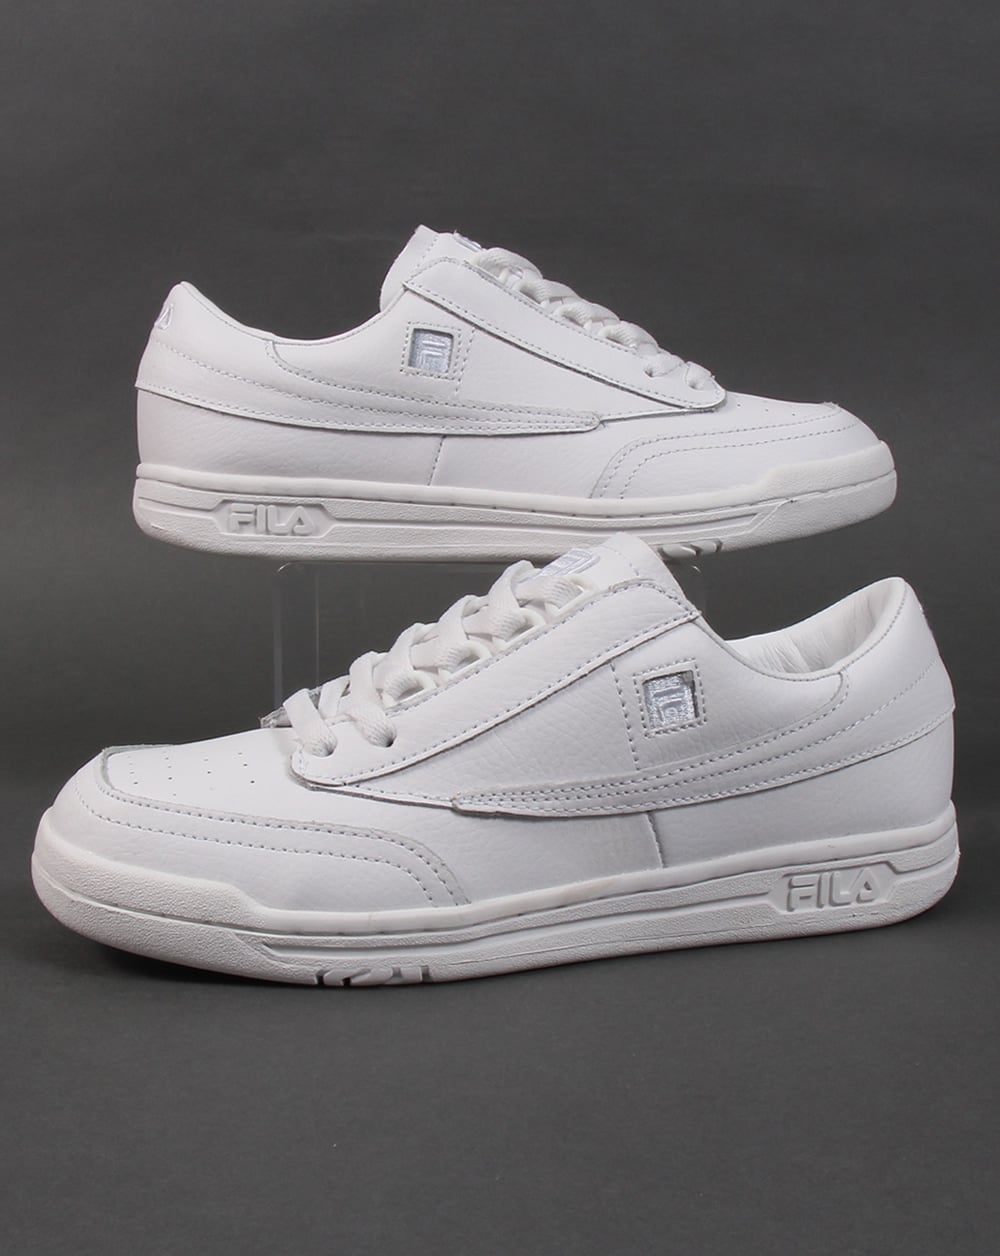 Fila Vintage Original Tennis Trainers White Shoes Sports Mens